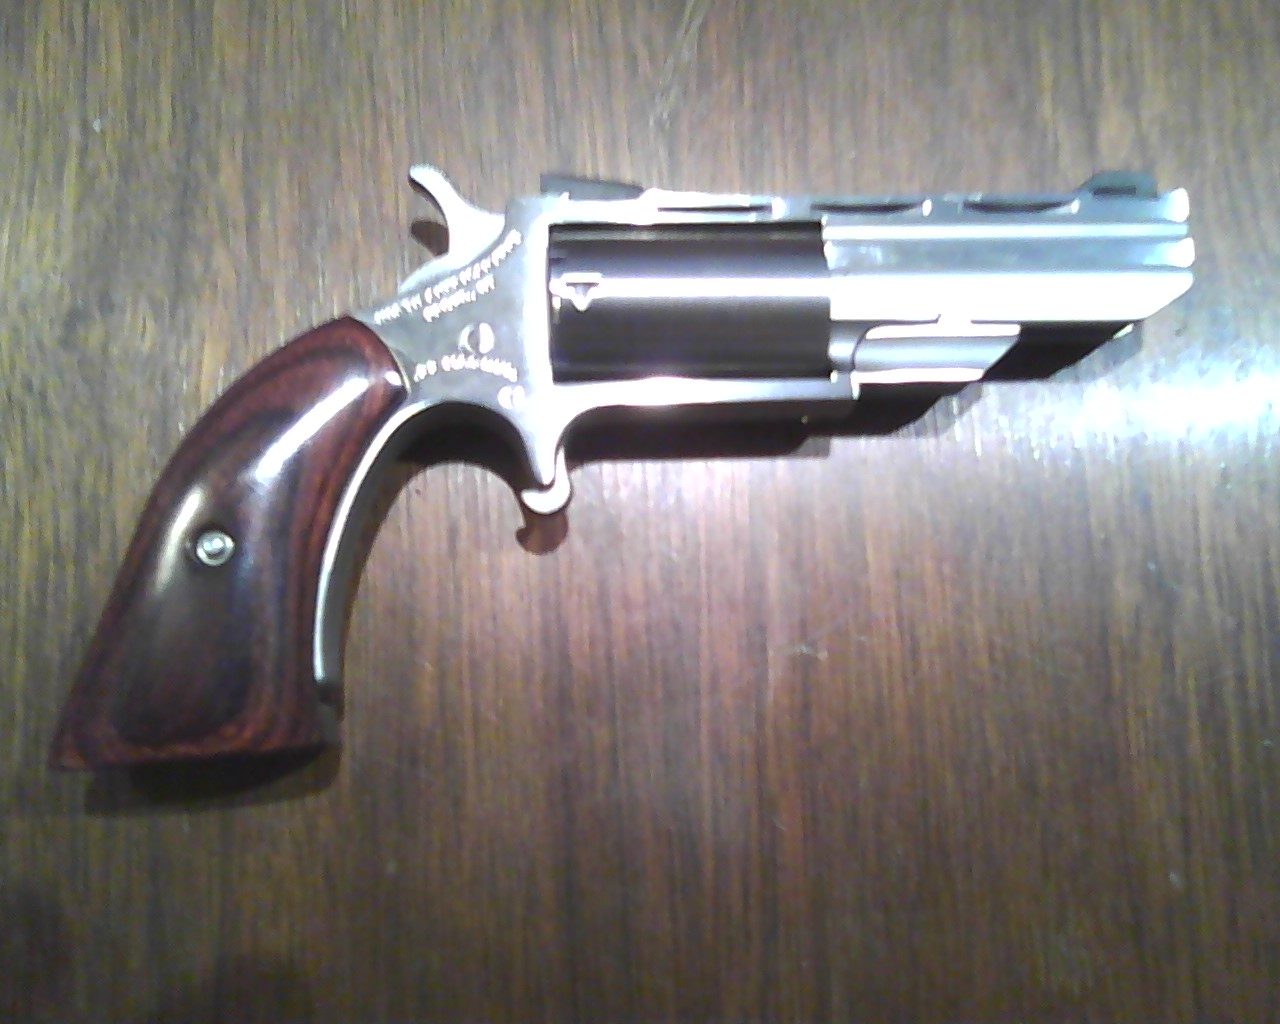 Single-action revolvers for concealed carry?-130114_0001.jpg